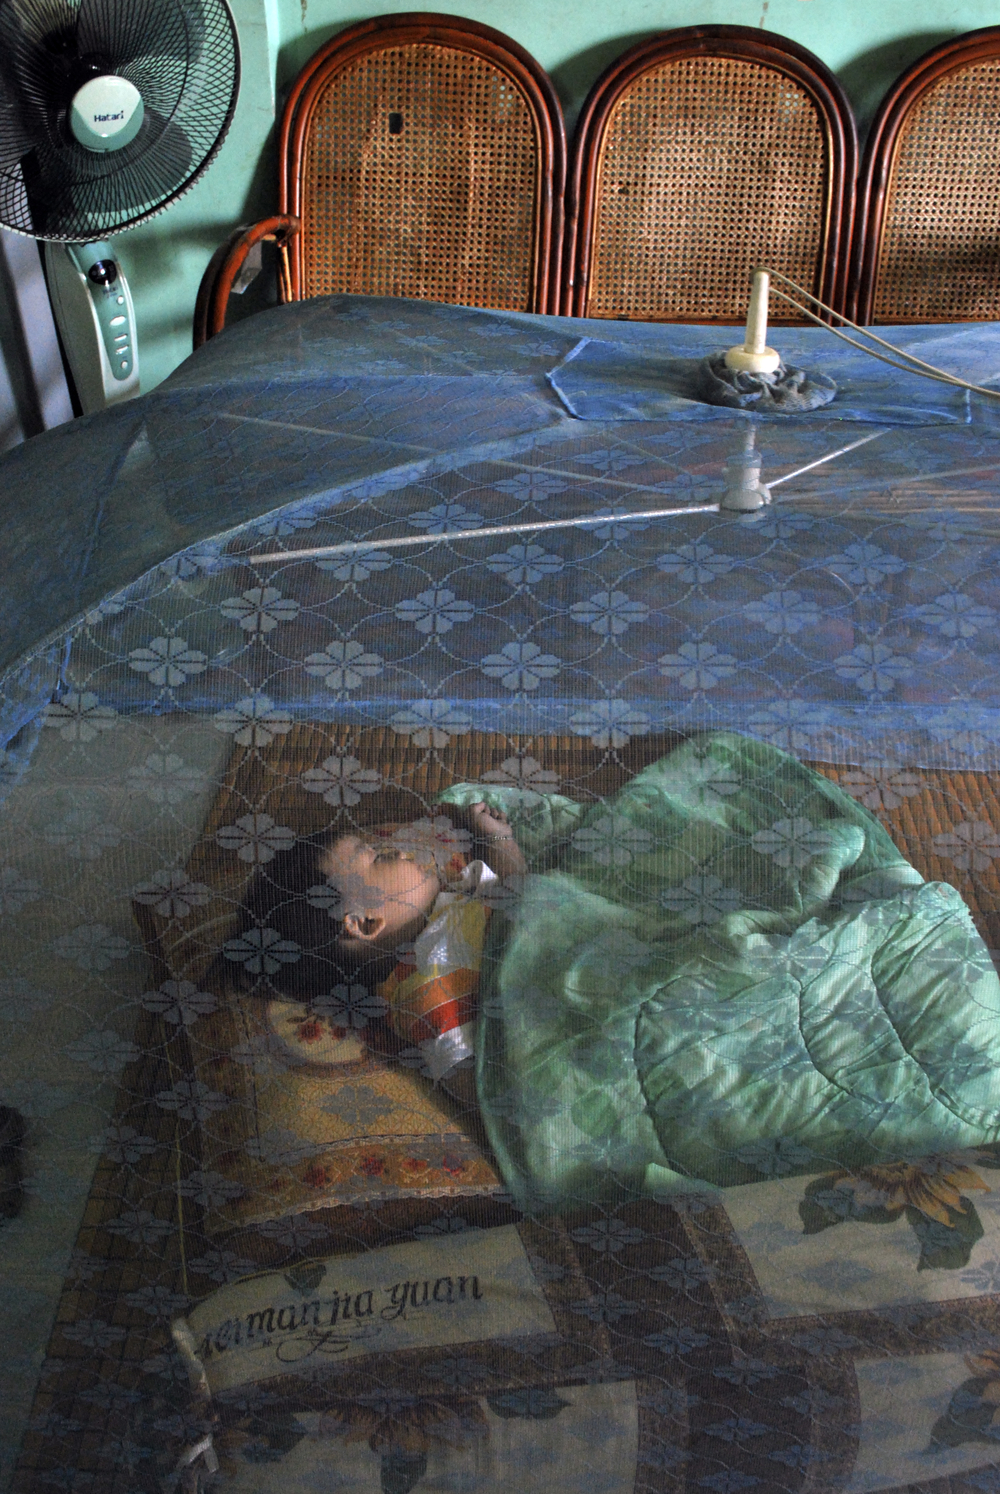 Malaria continues remains a source of concern in Cambodia. Some 54,000 cases were reported in 2008